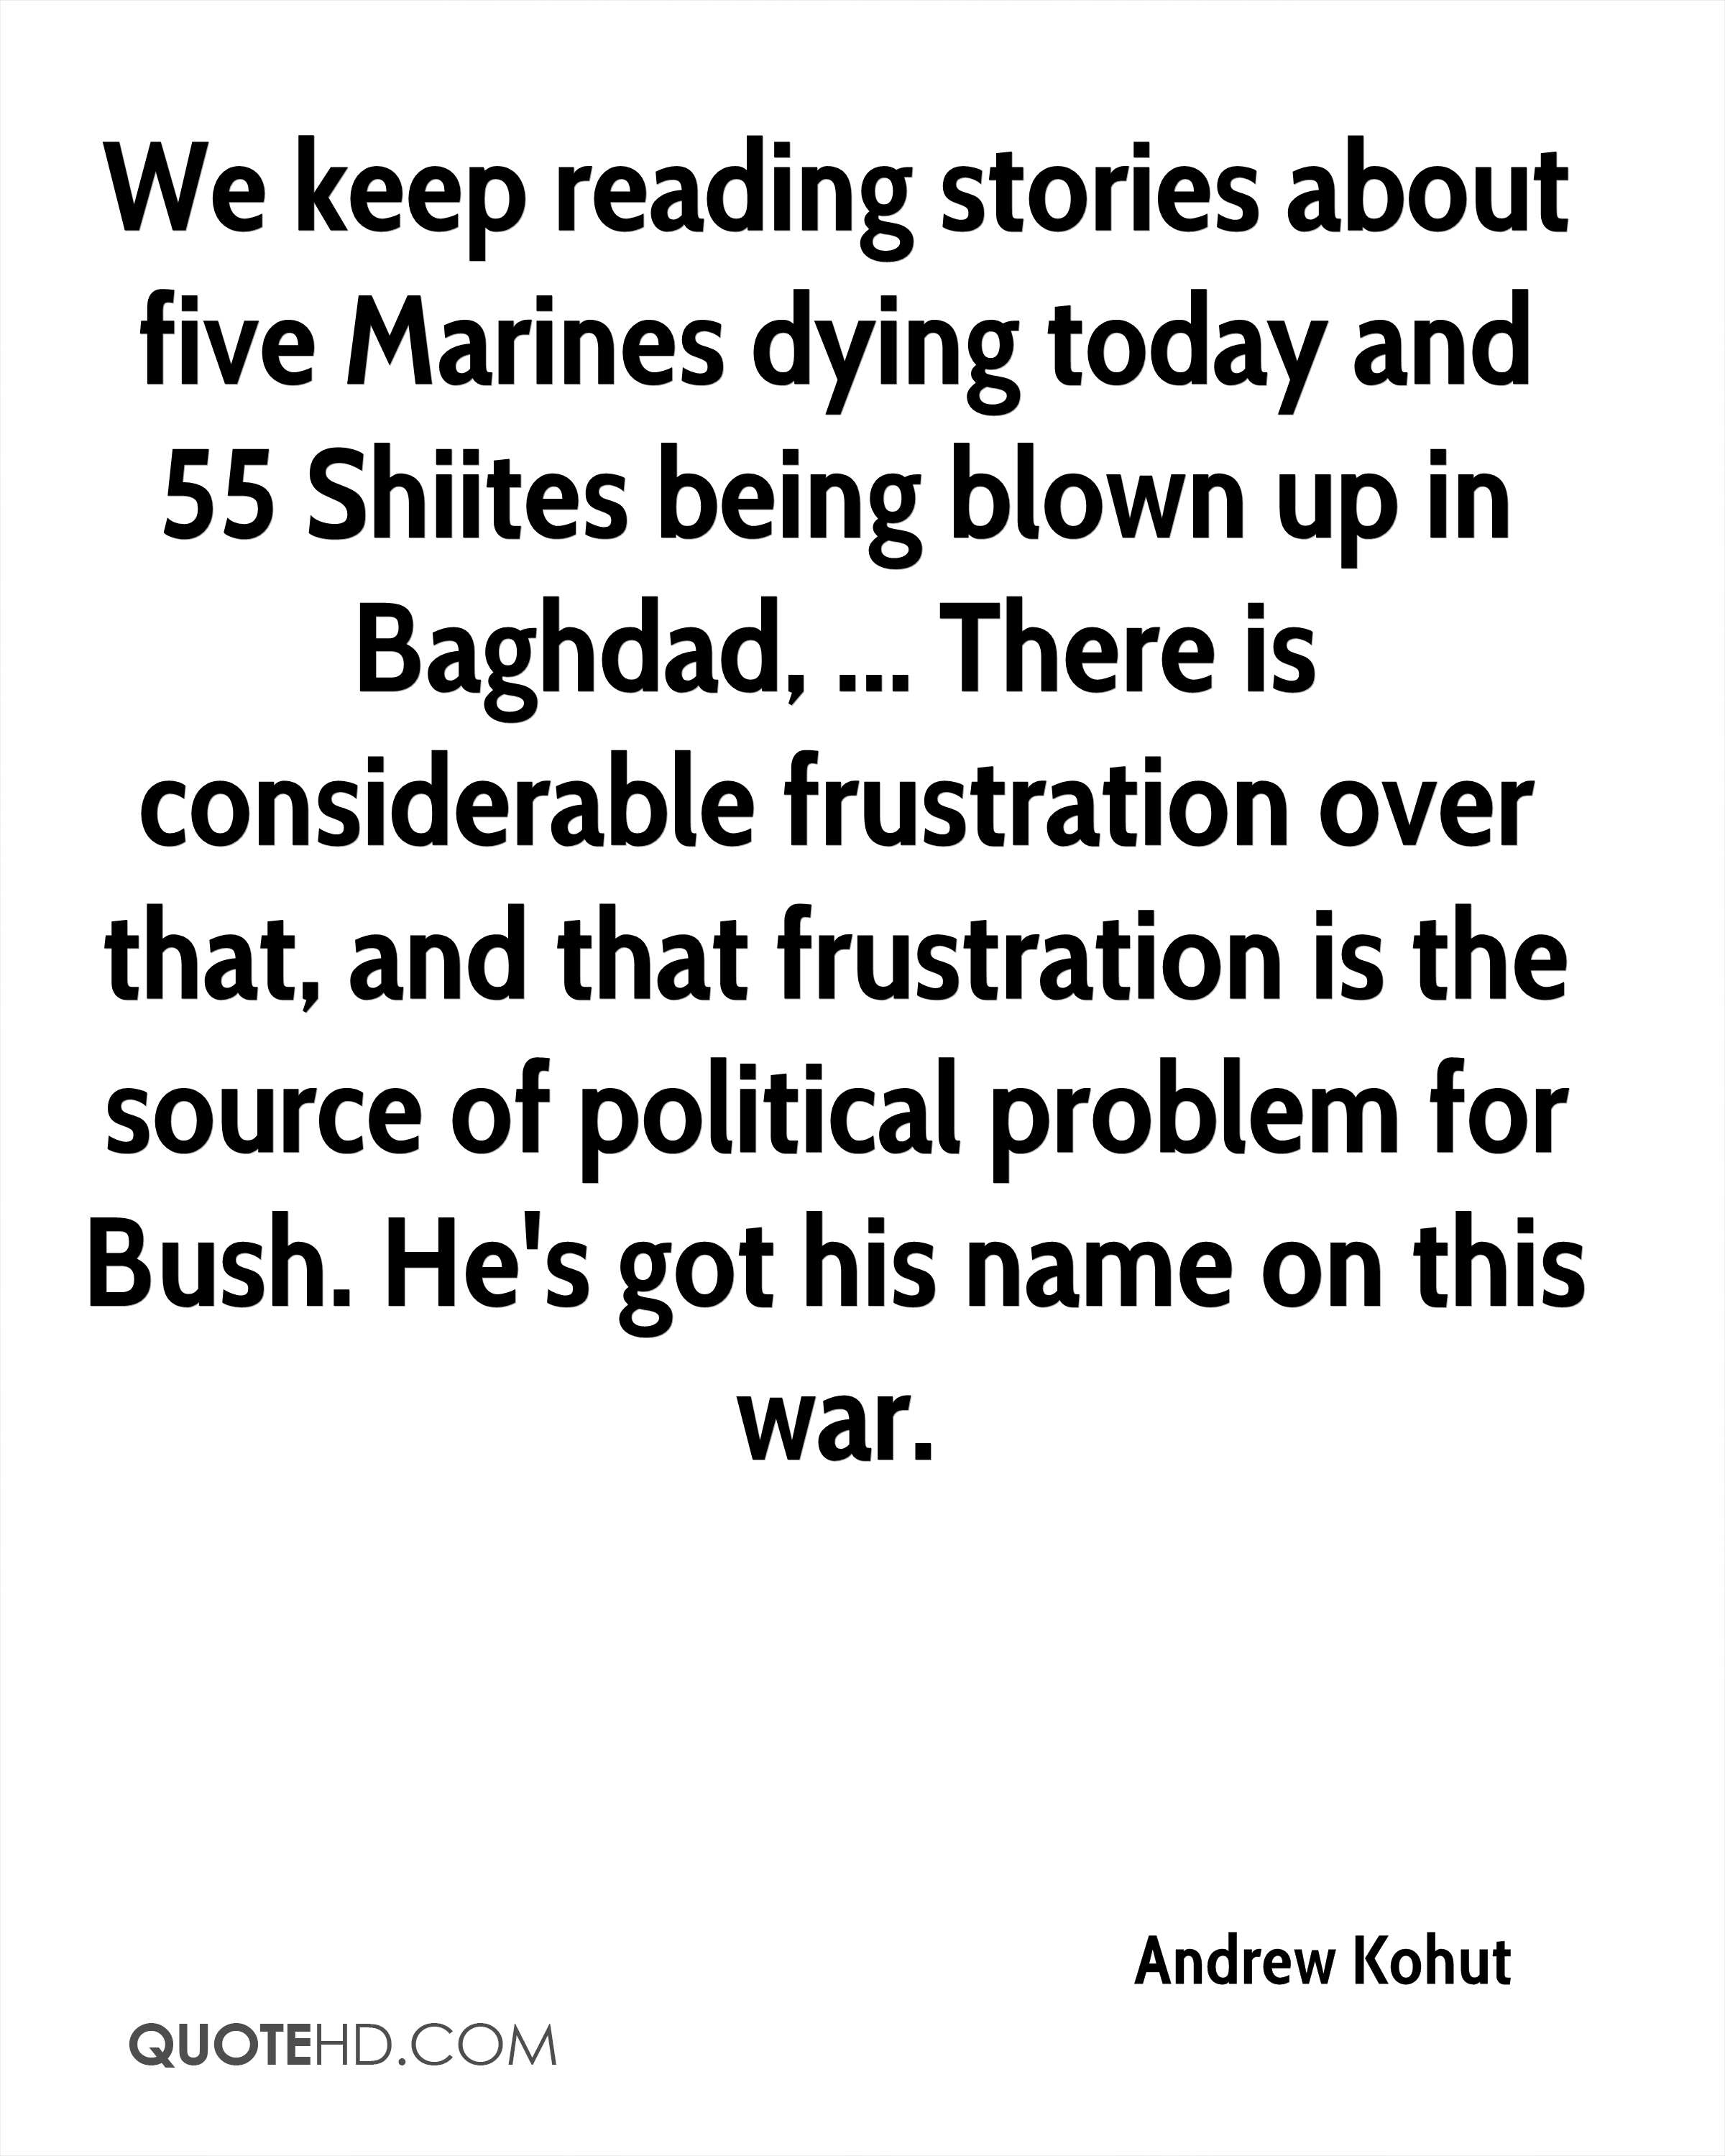 We keep reading stories about five Marines dying today and 55 Shiites being blown up in Baghdad, ... There is considerable frustration over that, and that frustration is the source of political problem for Bush. He's got his name on this war.